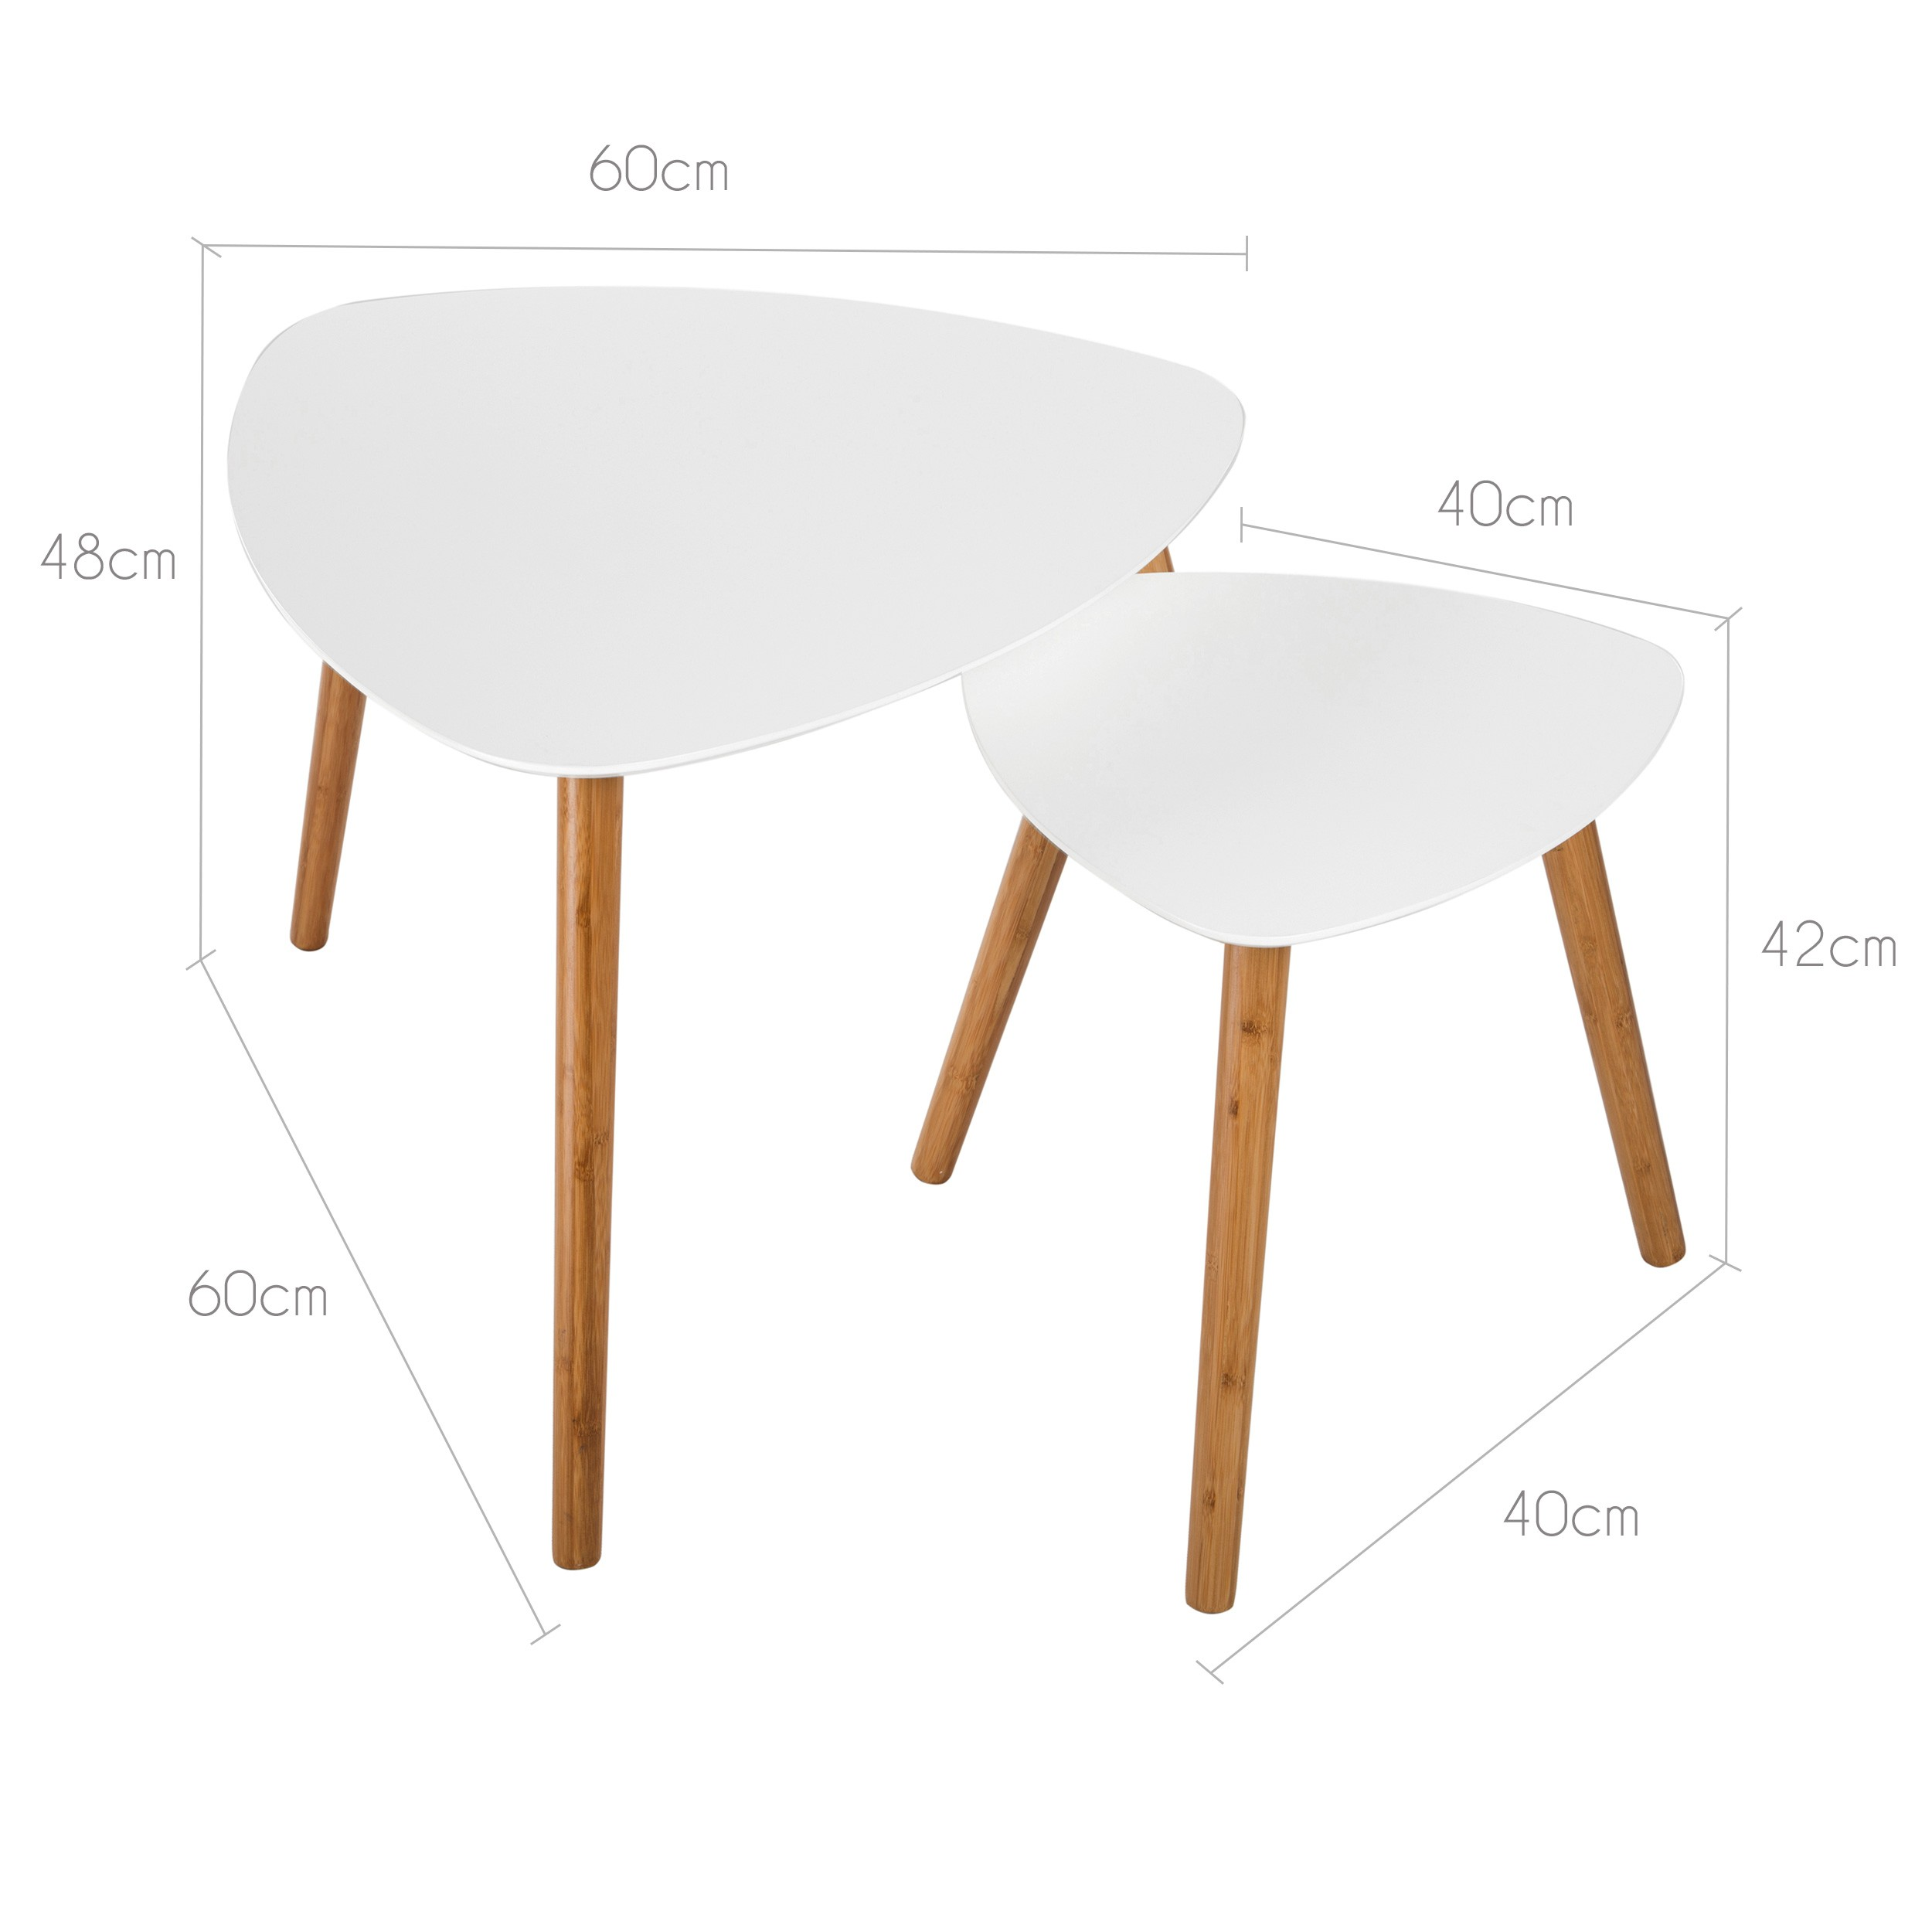 table basse scandinave blanche lot de 2 achetez nos tables basses scandinaves blanches lot. Black Bedroom Furniture Sets. Home Design Ideas